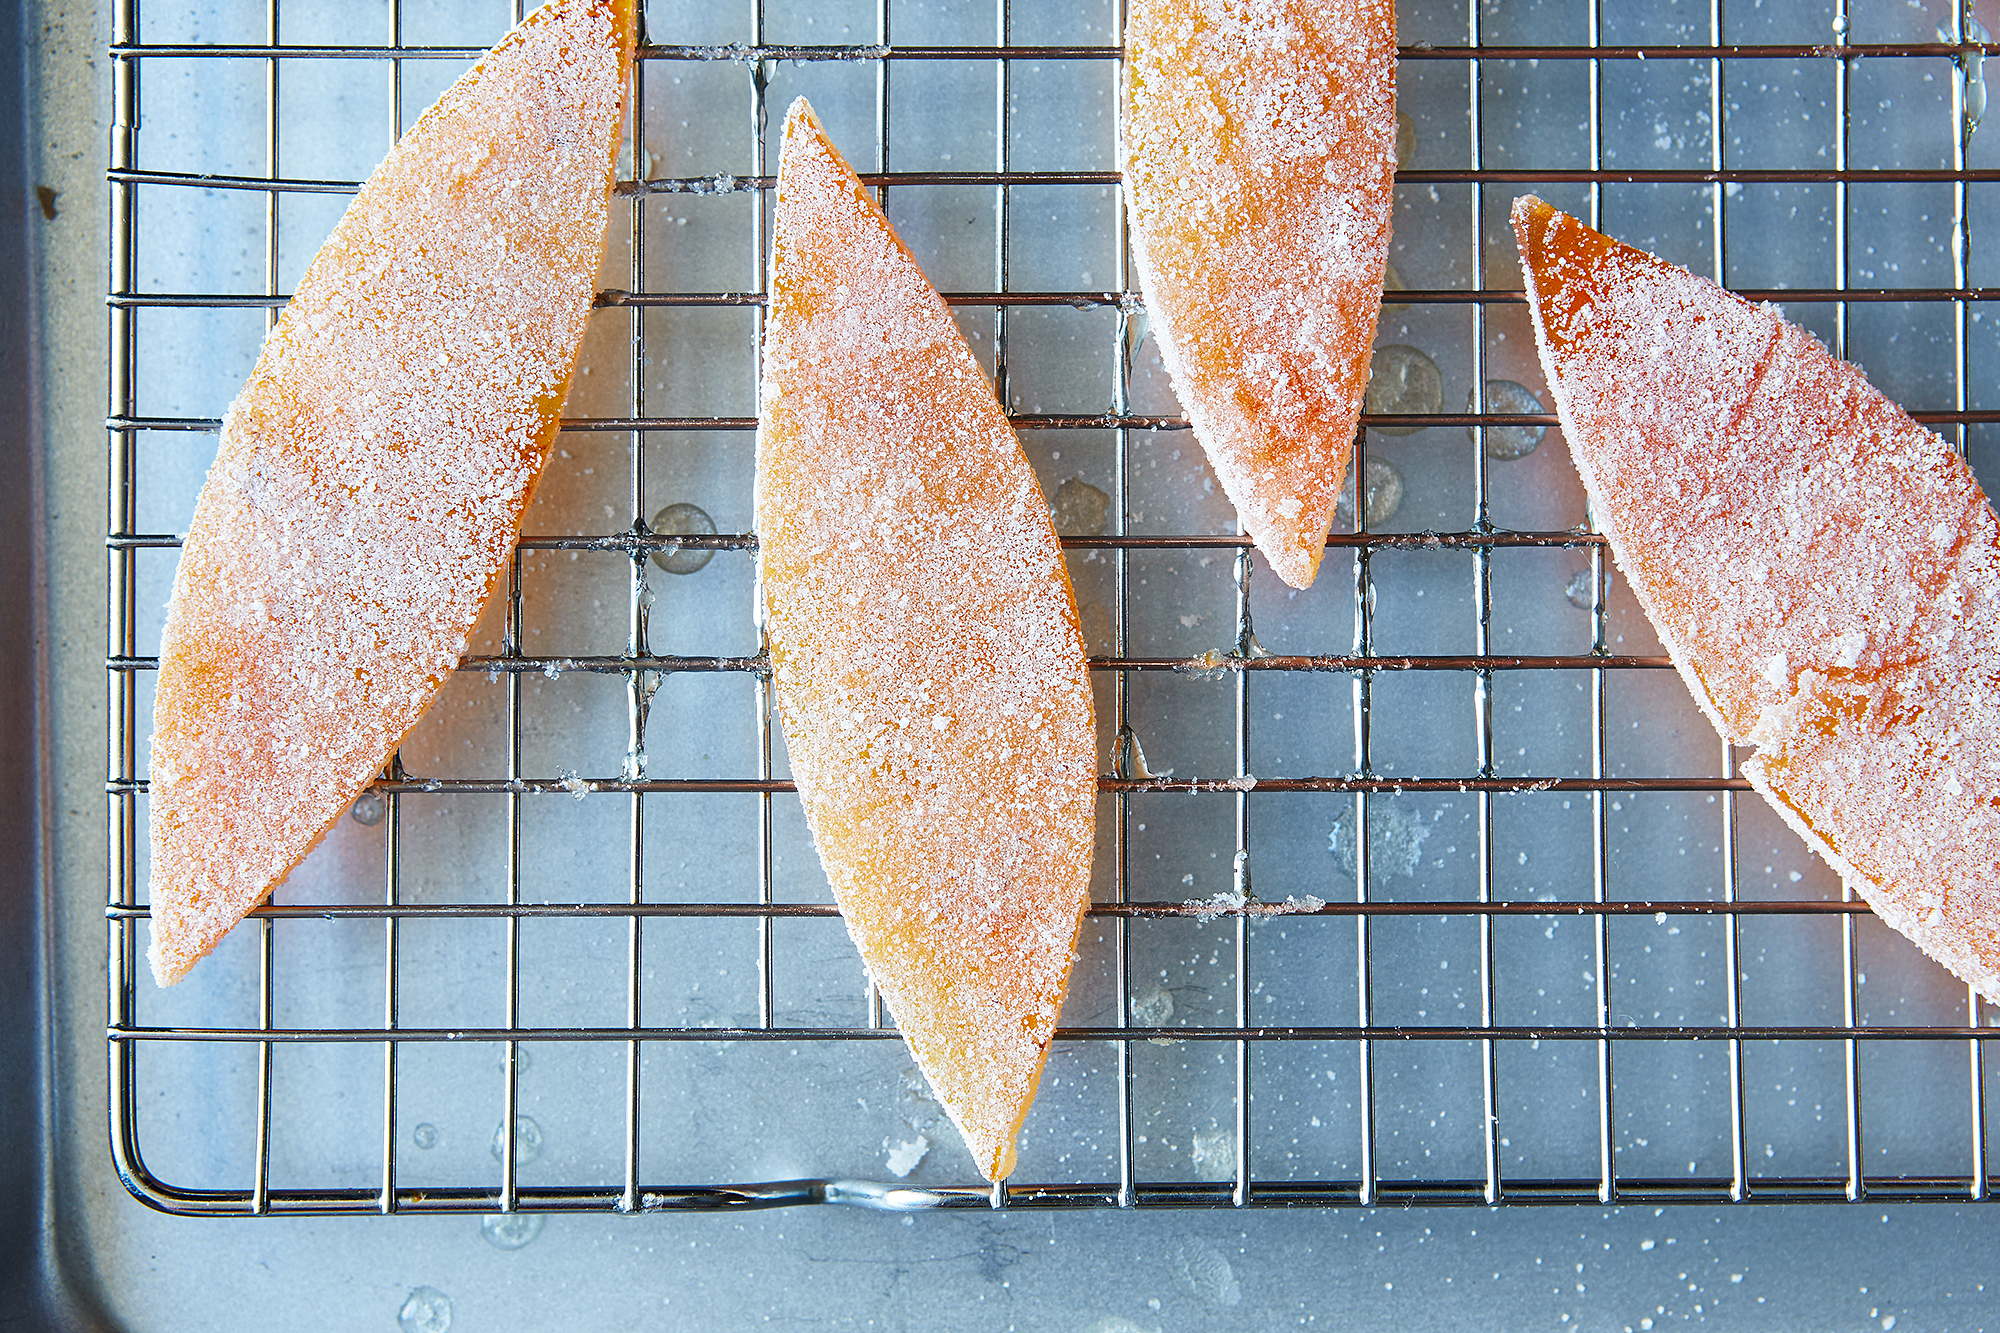 How to Make Candied Citrus Peel at Home